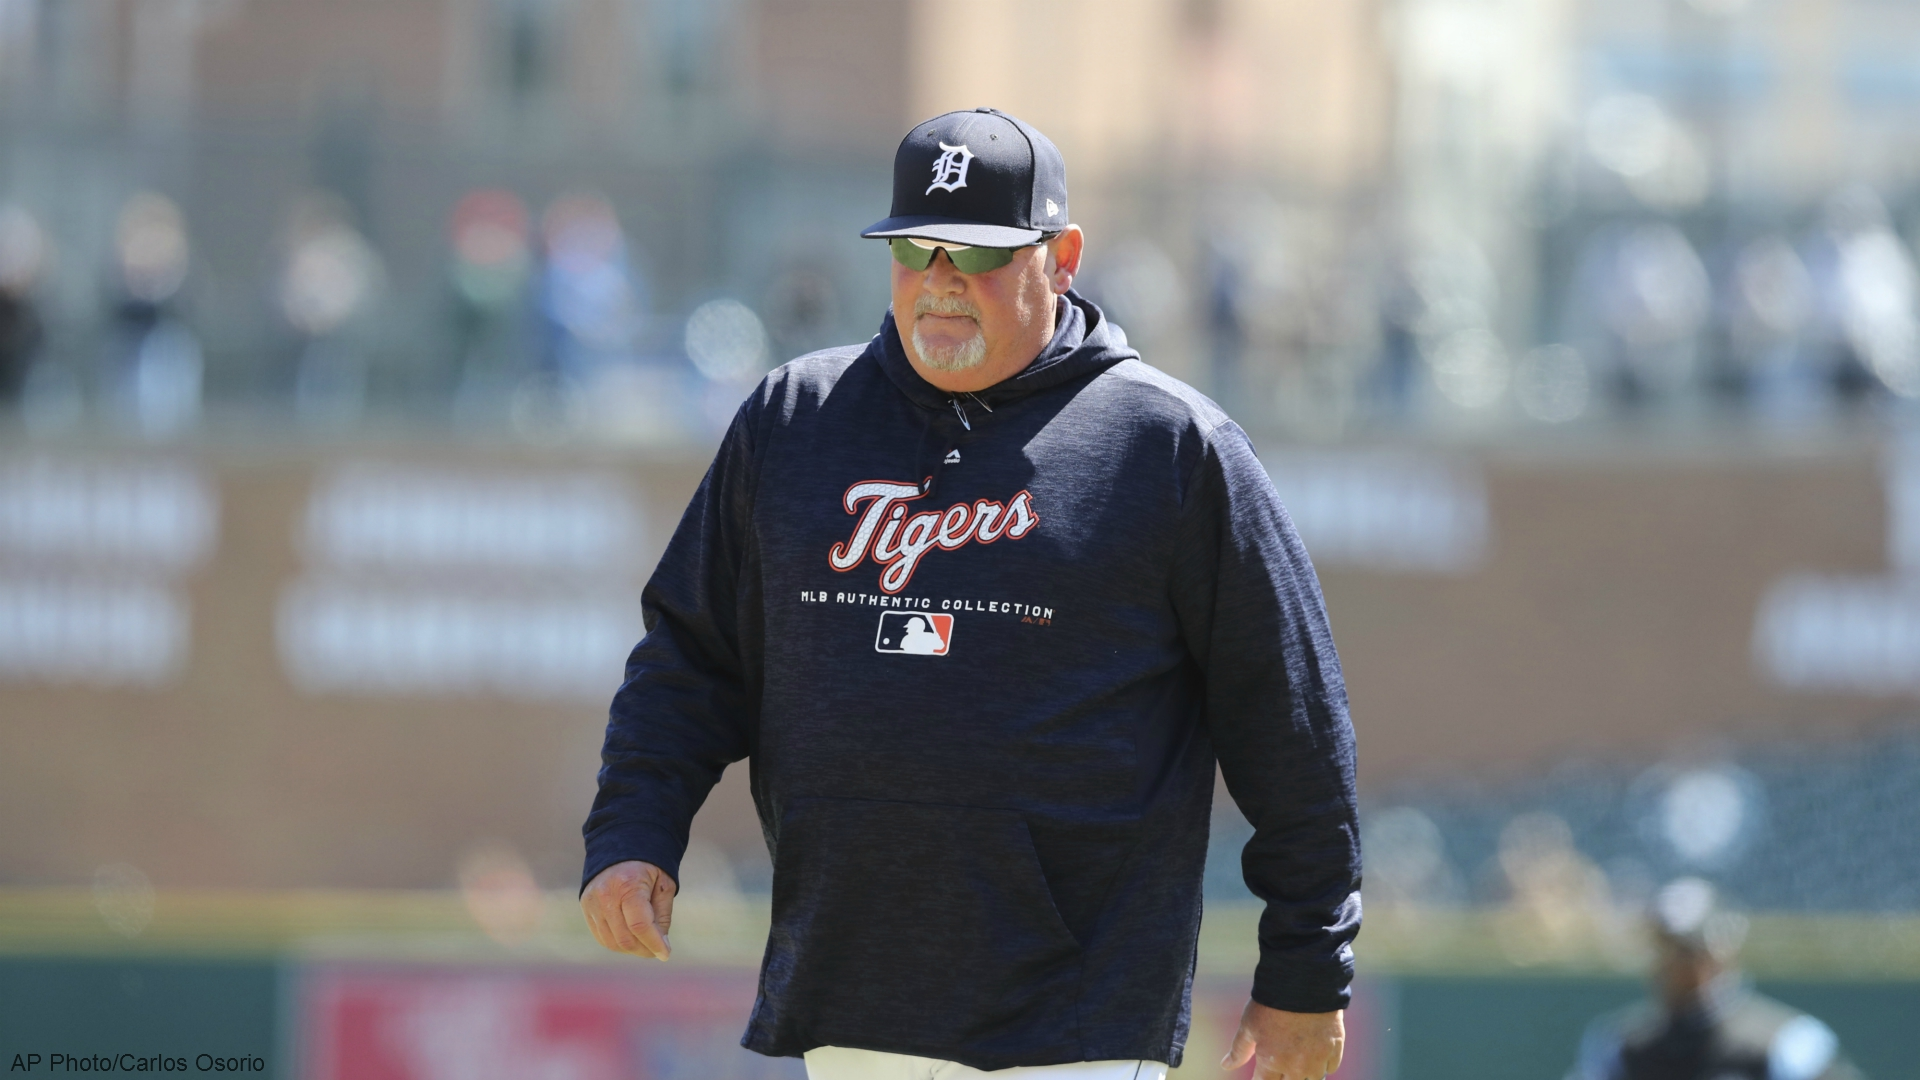 detroit tigers pitching coach chris bosio 042018 AP_1530129609689.jpg.jpg